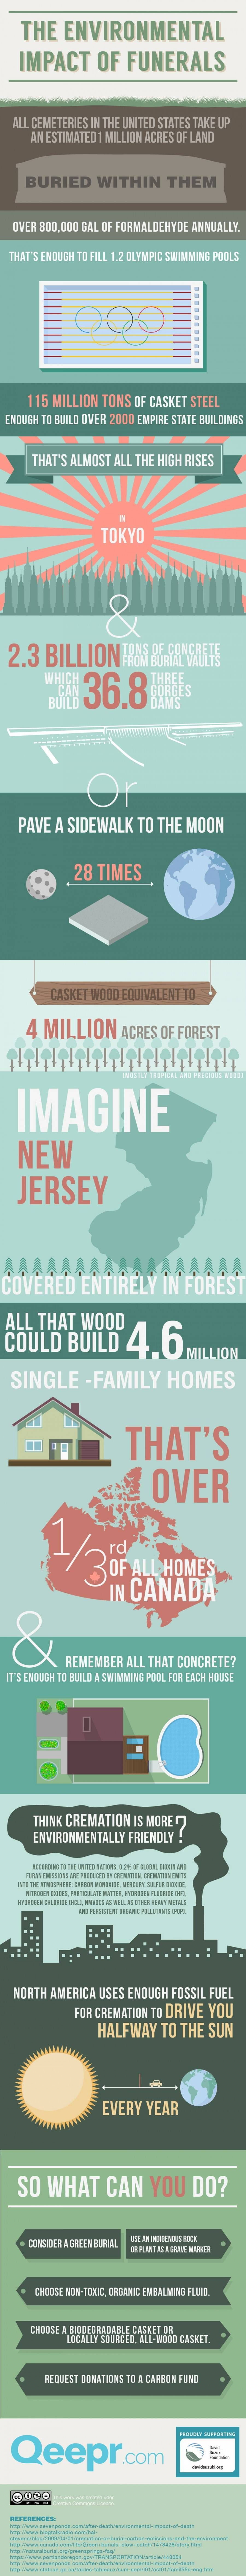 The Environmental Impact Of Funerals Infographic Green Funeral